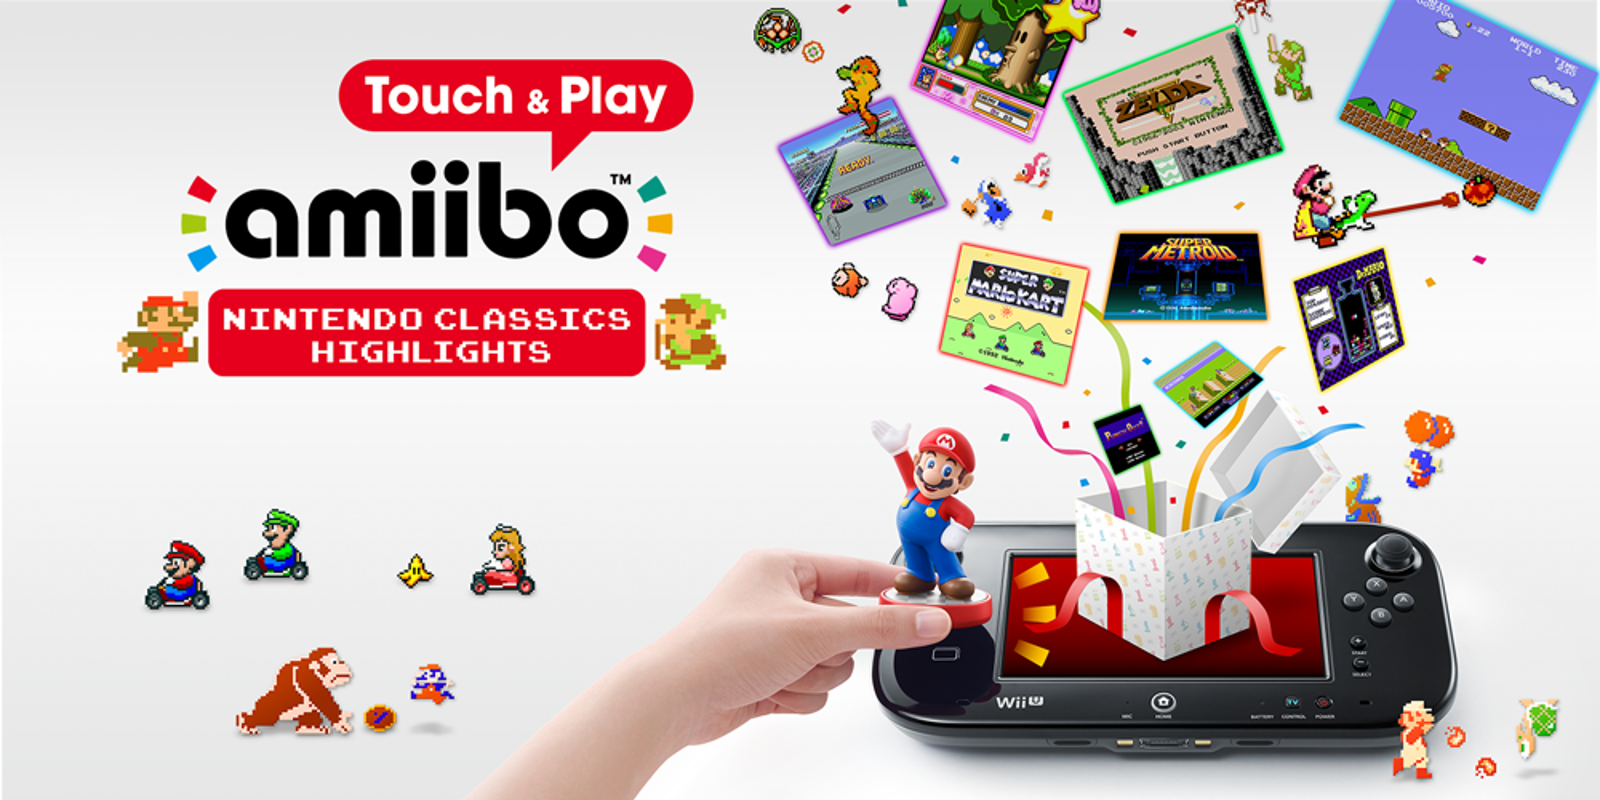 amiibo Touch & Play: Nintendo Classics Highlights